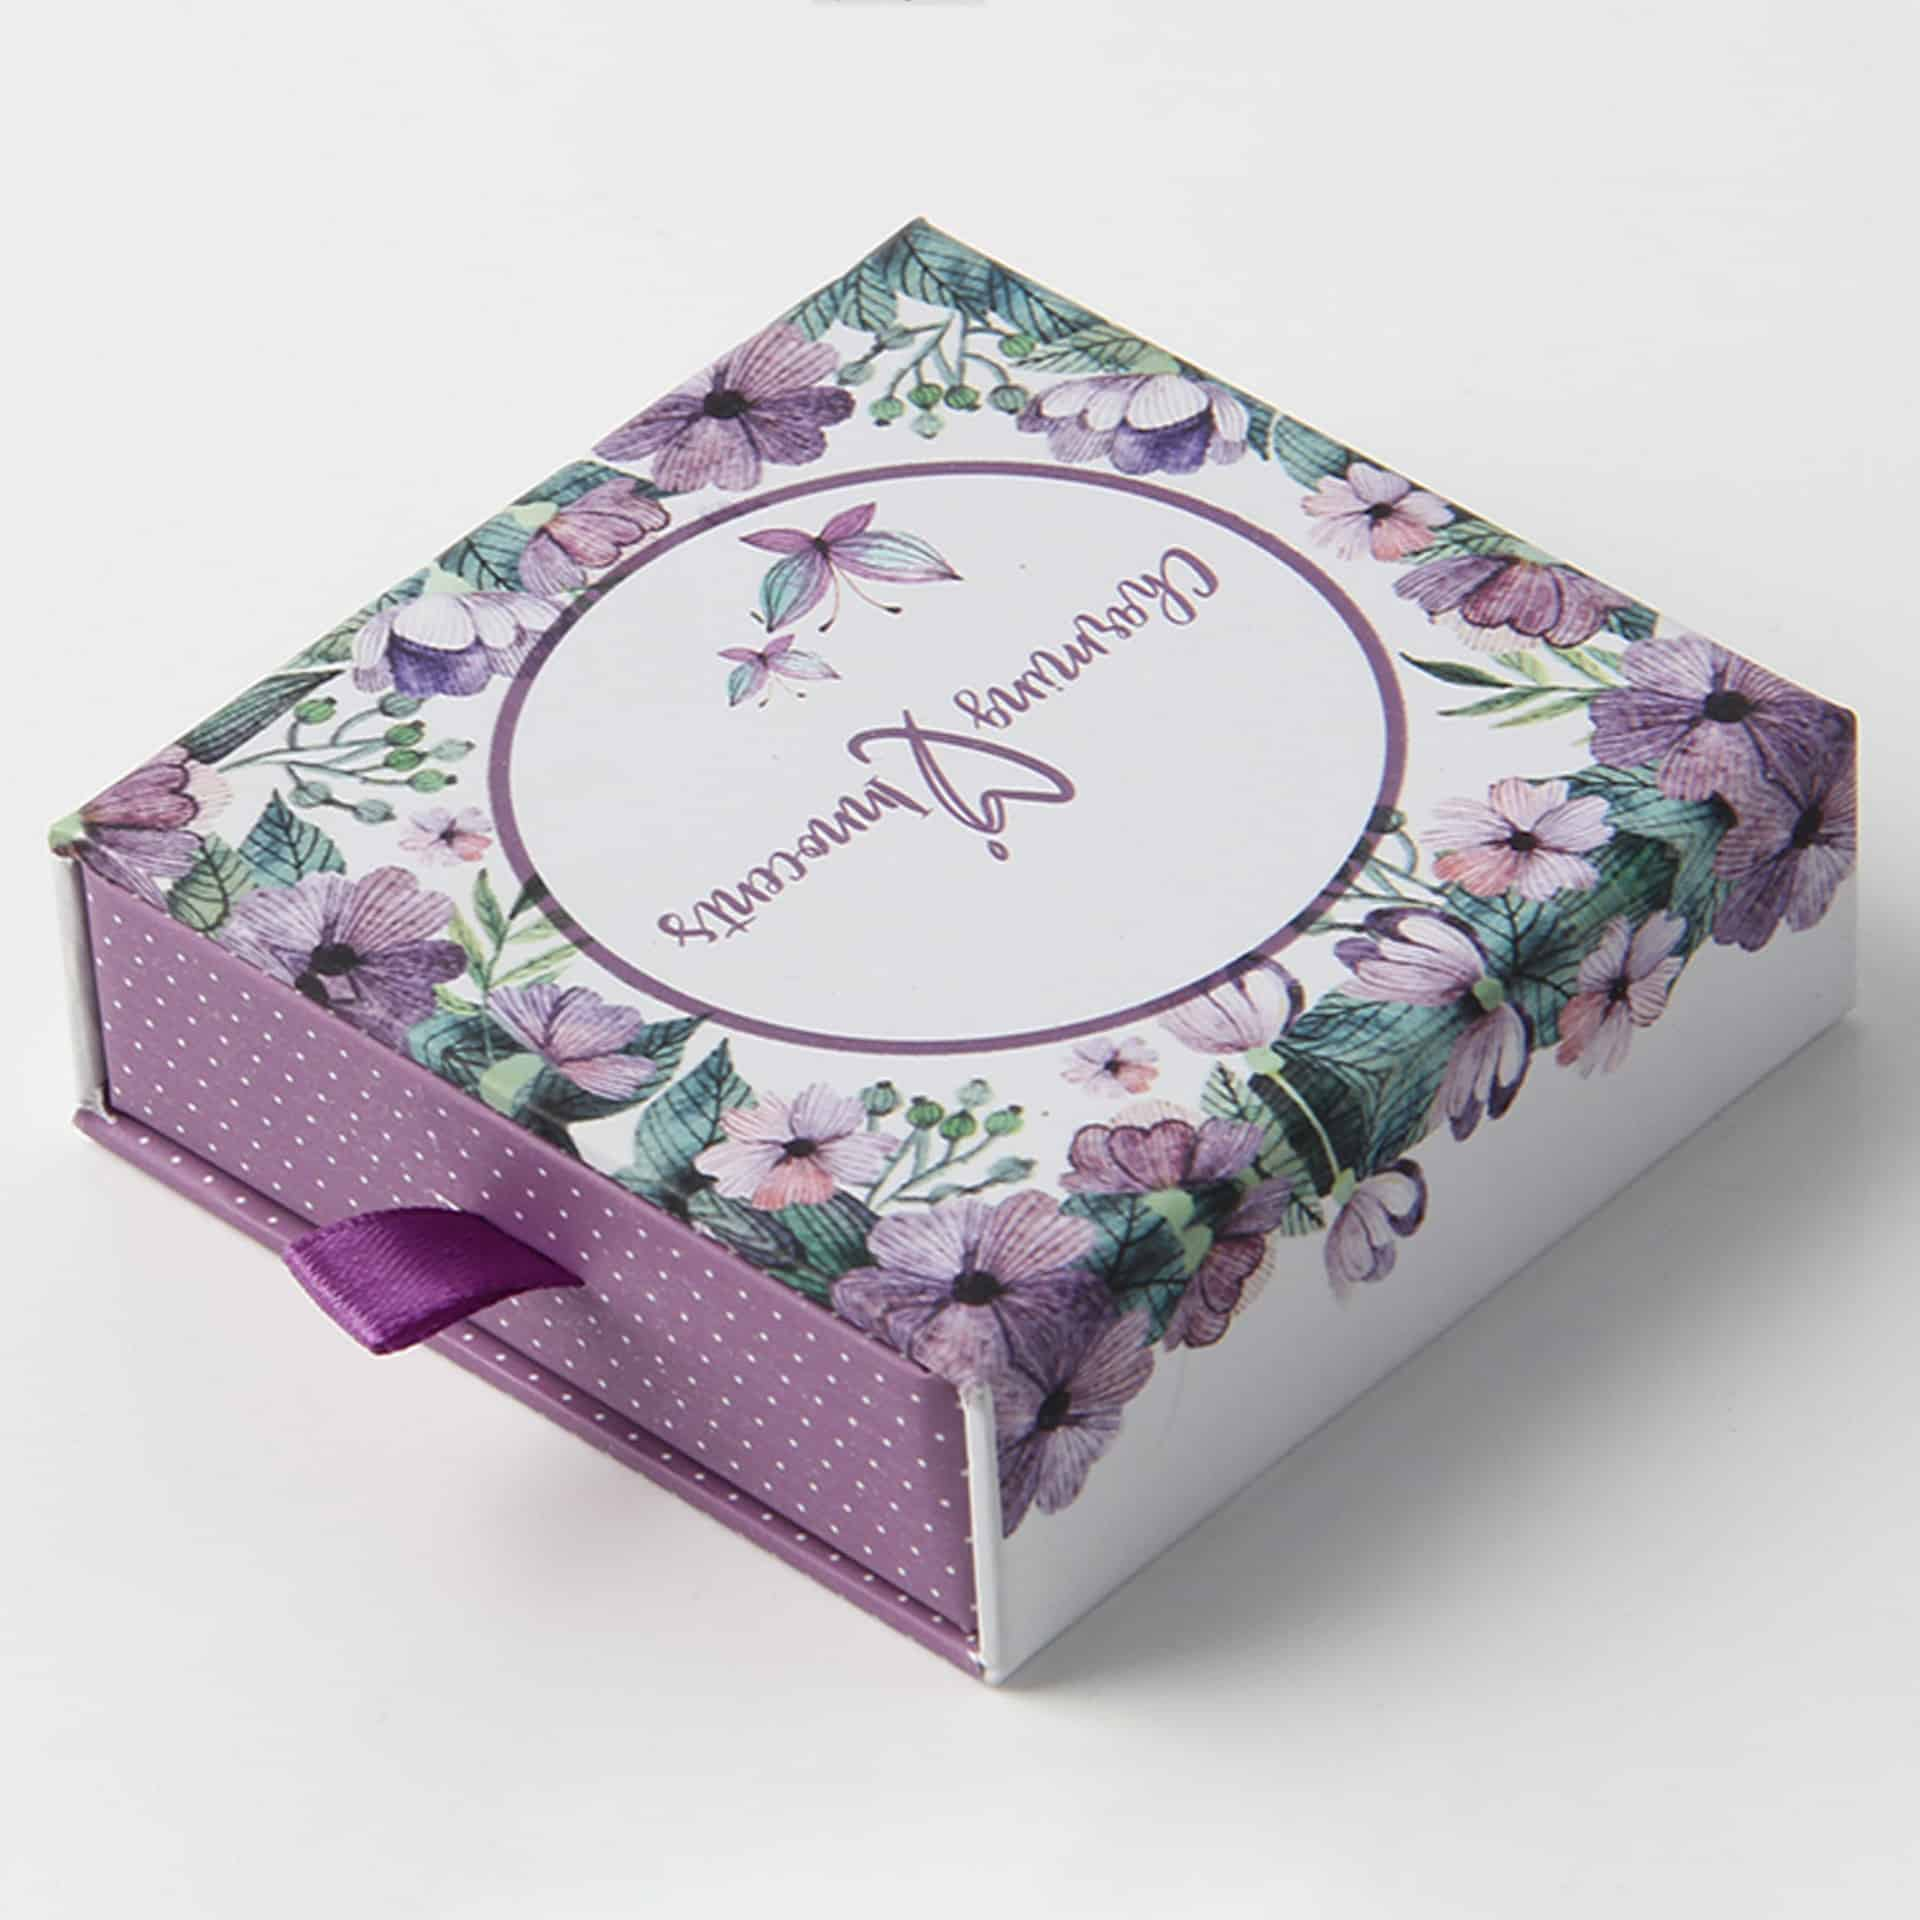 Jewelry Paper Gift Box Packaging